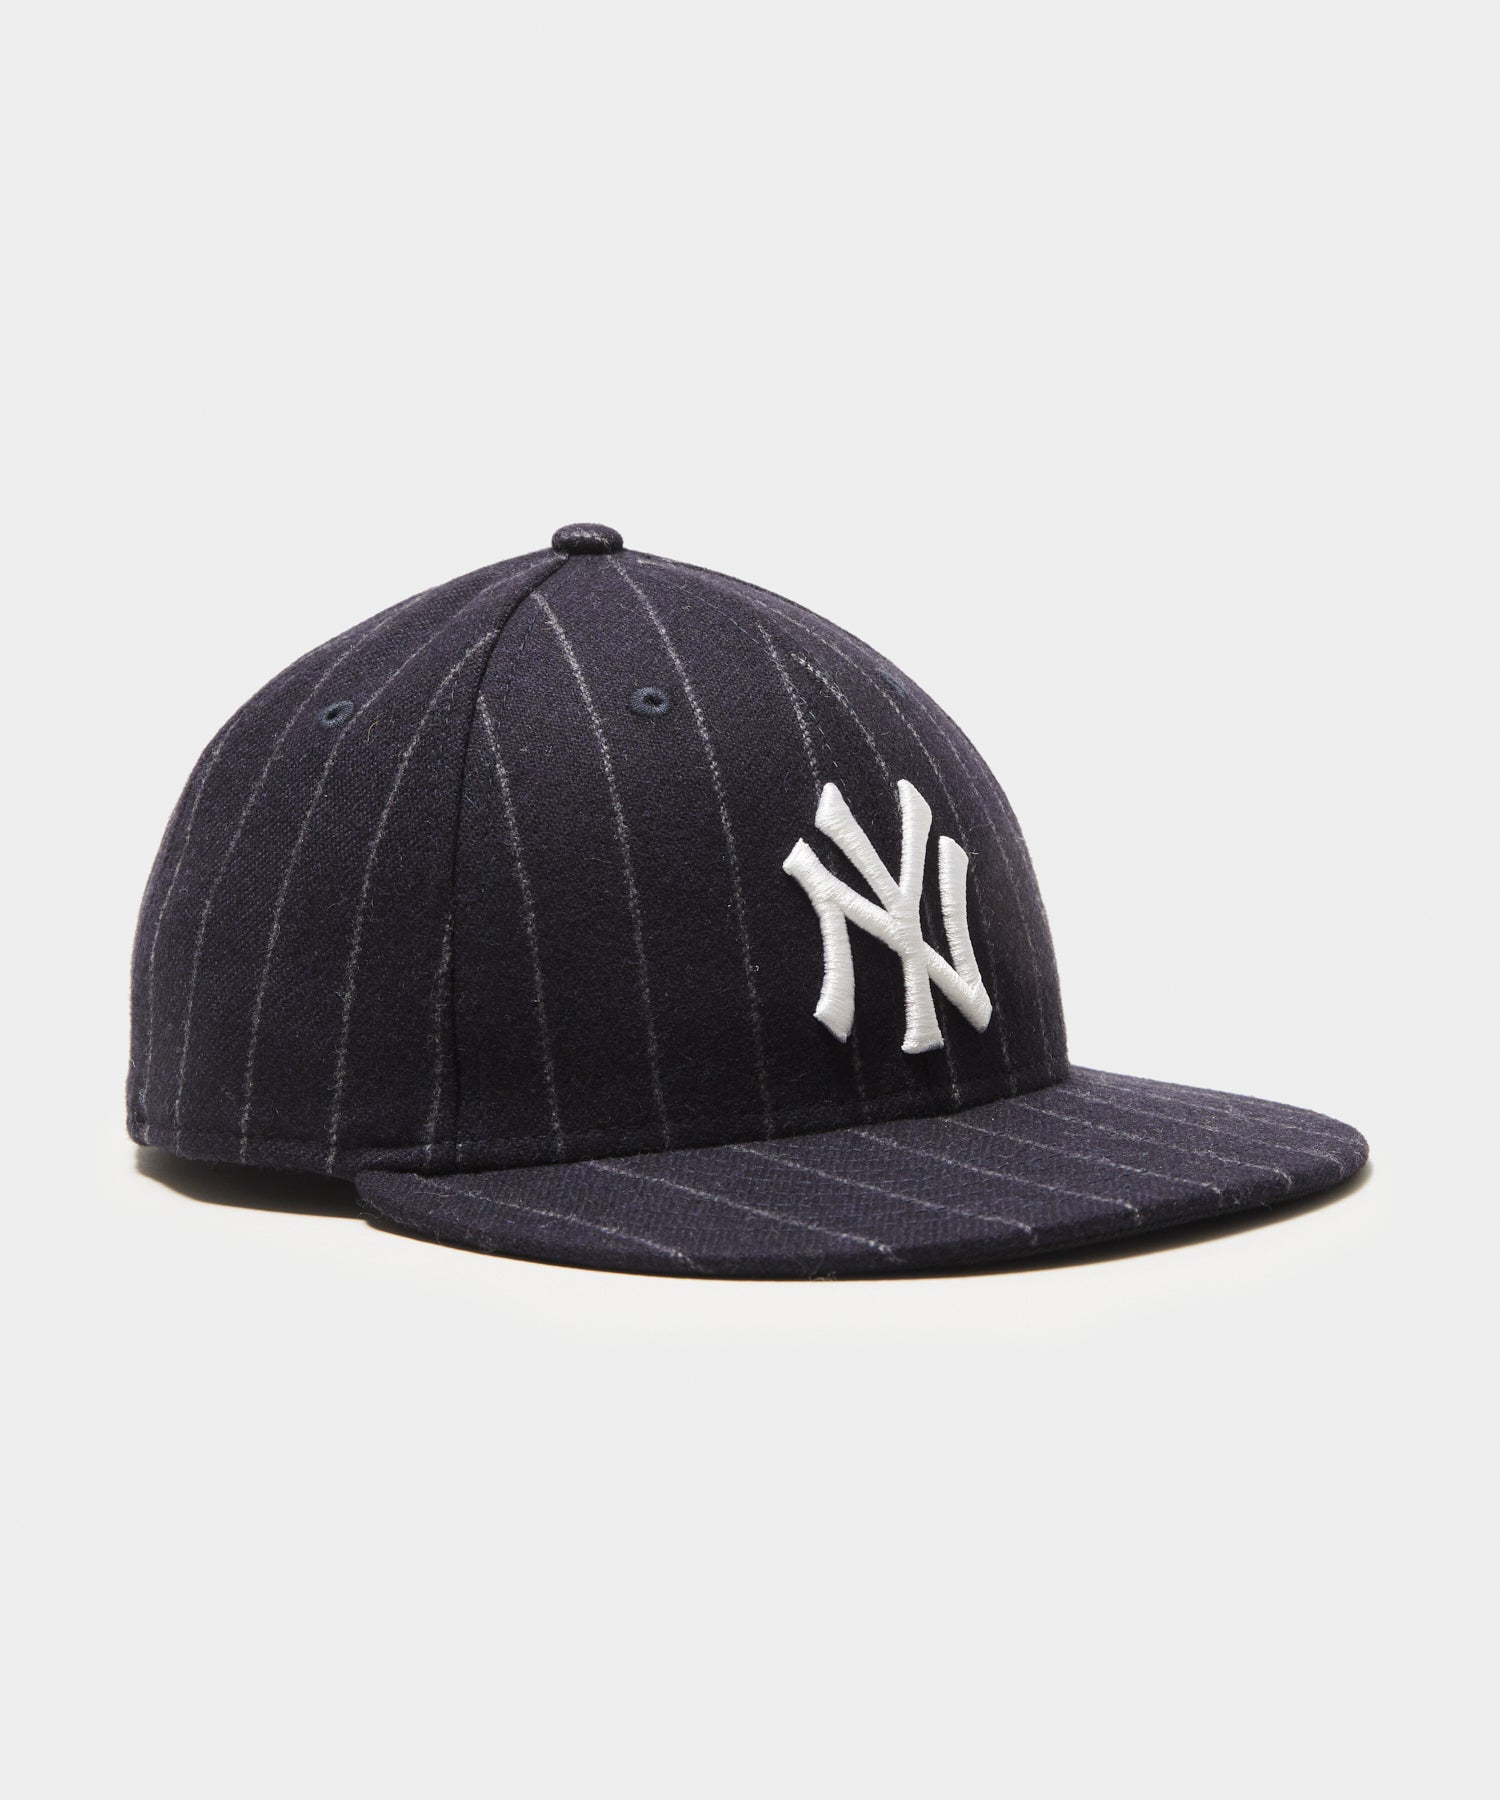 Todd Snyder + New Era NY Yankees Low Profile Cap in Navy Wool Chalkstripe